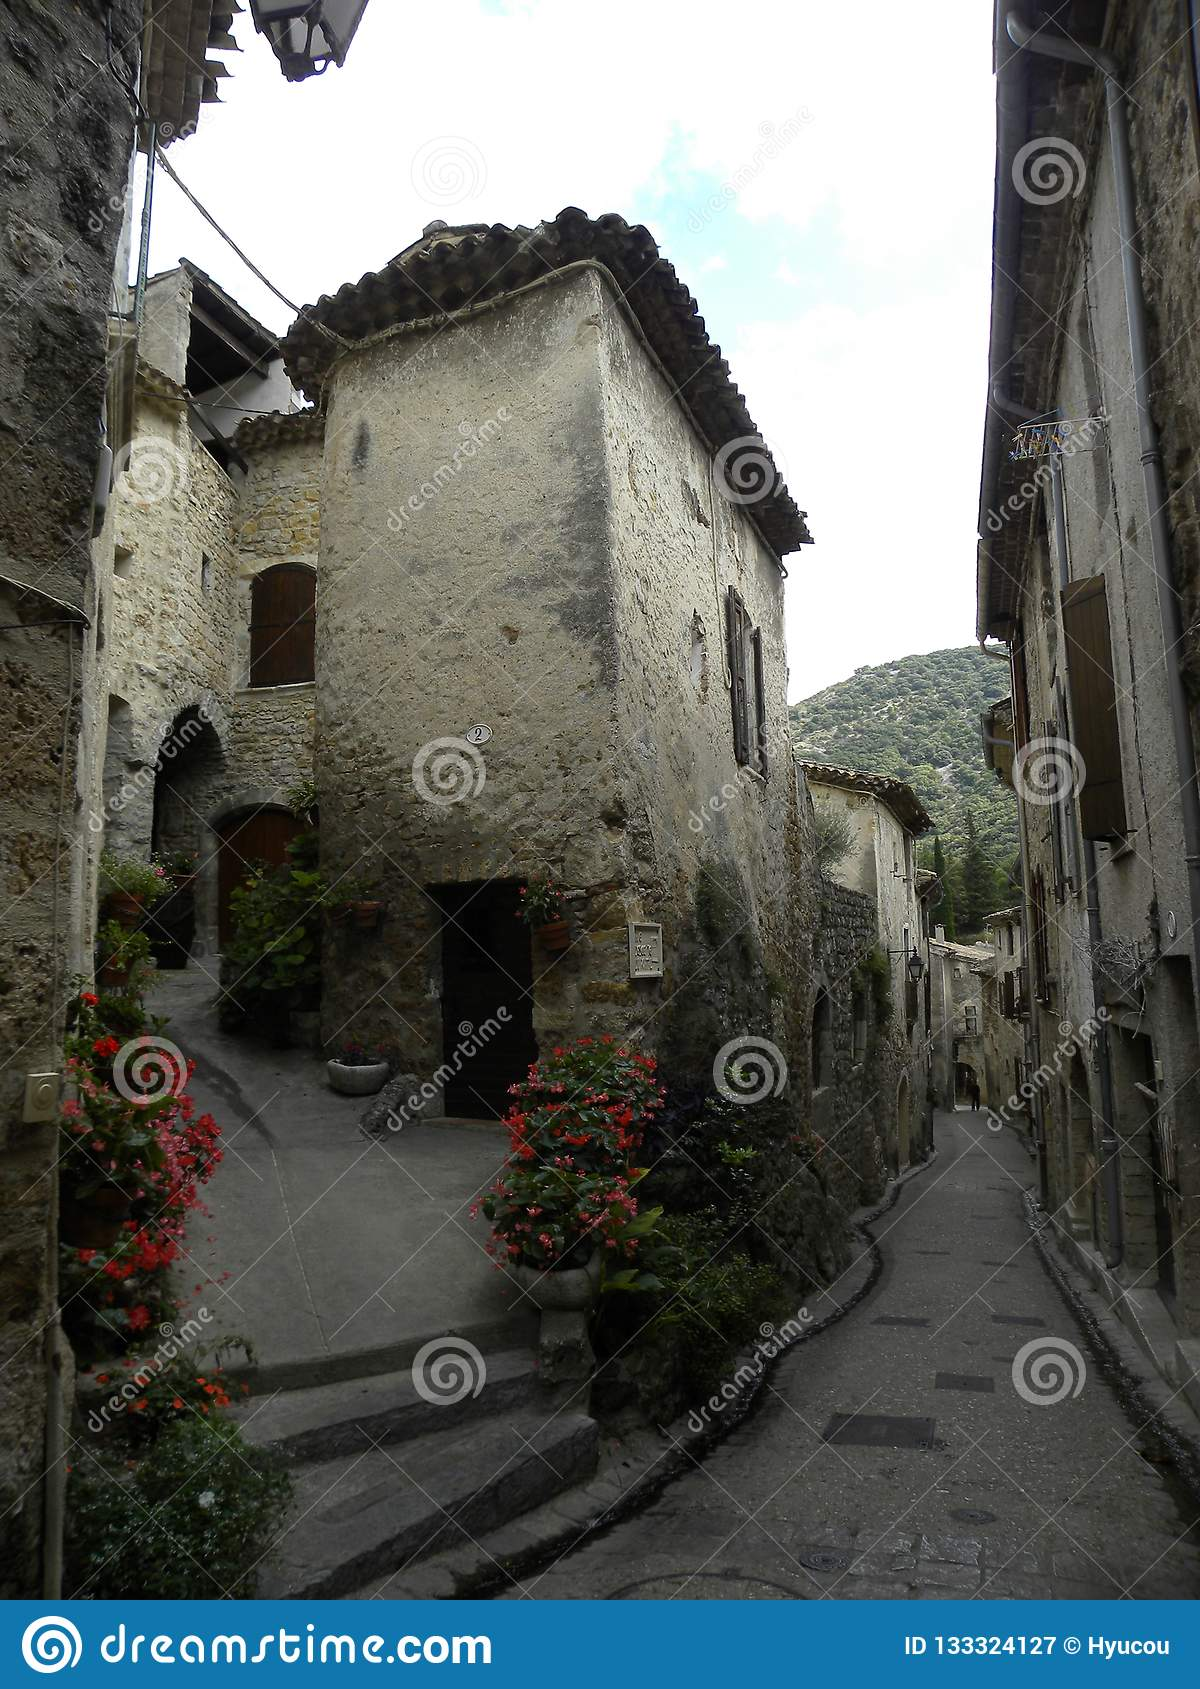 Saint-guilhem-le-desert, a village in herault, languedoc, france